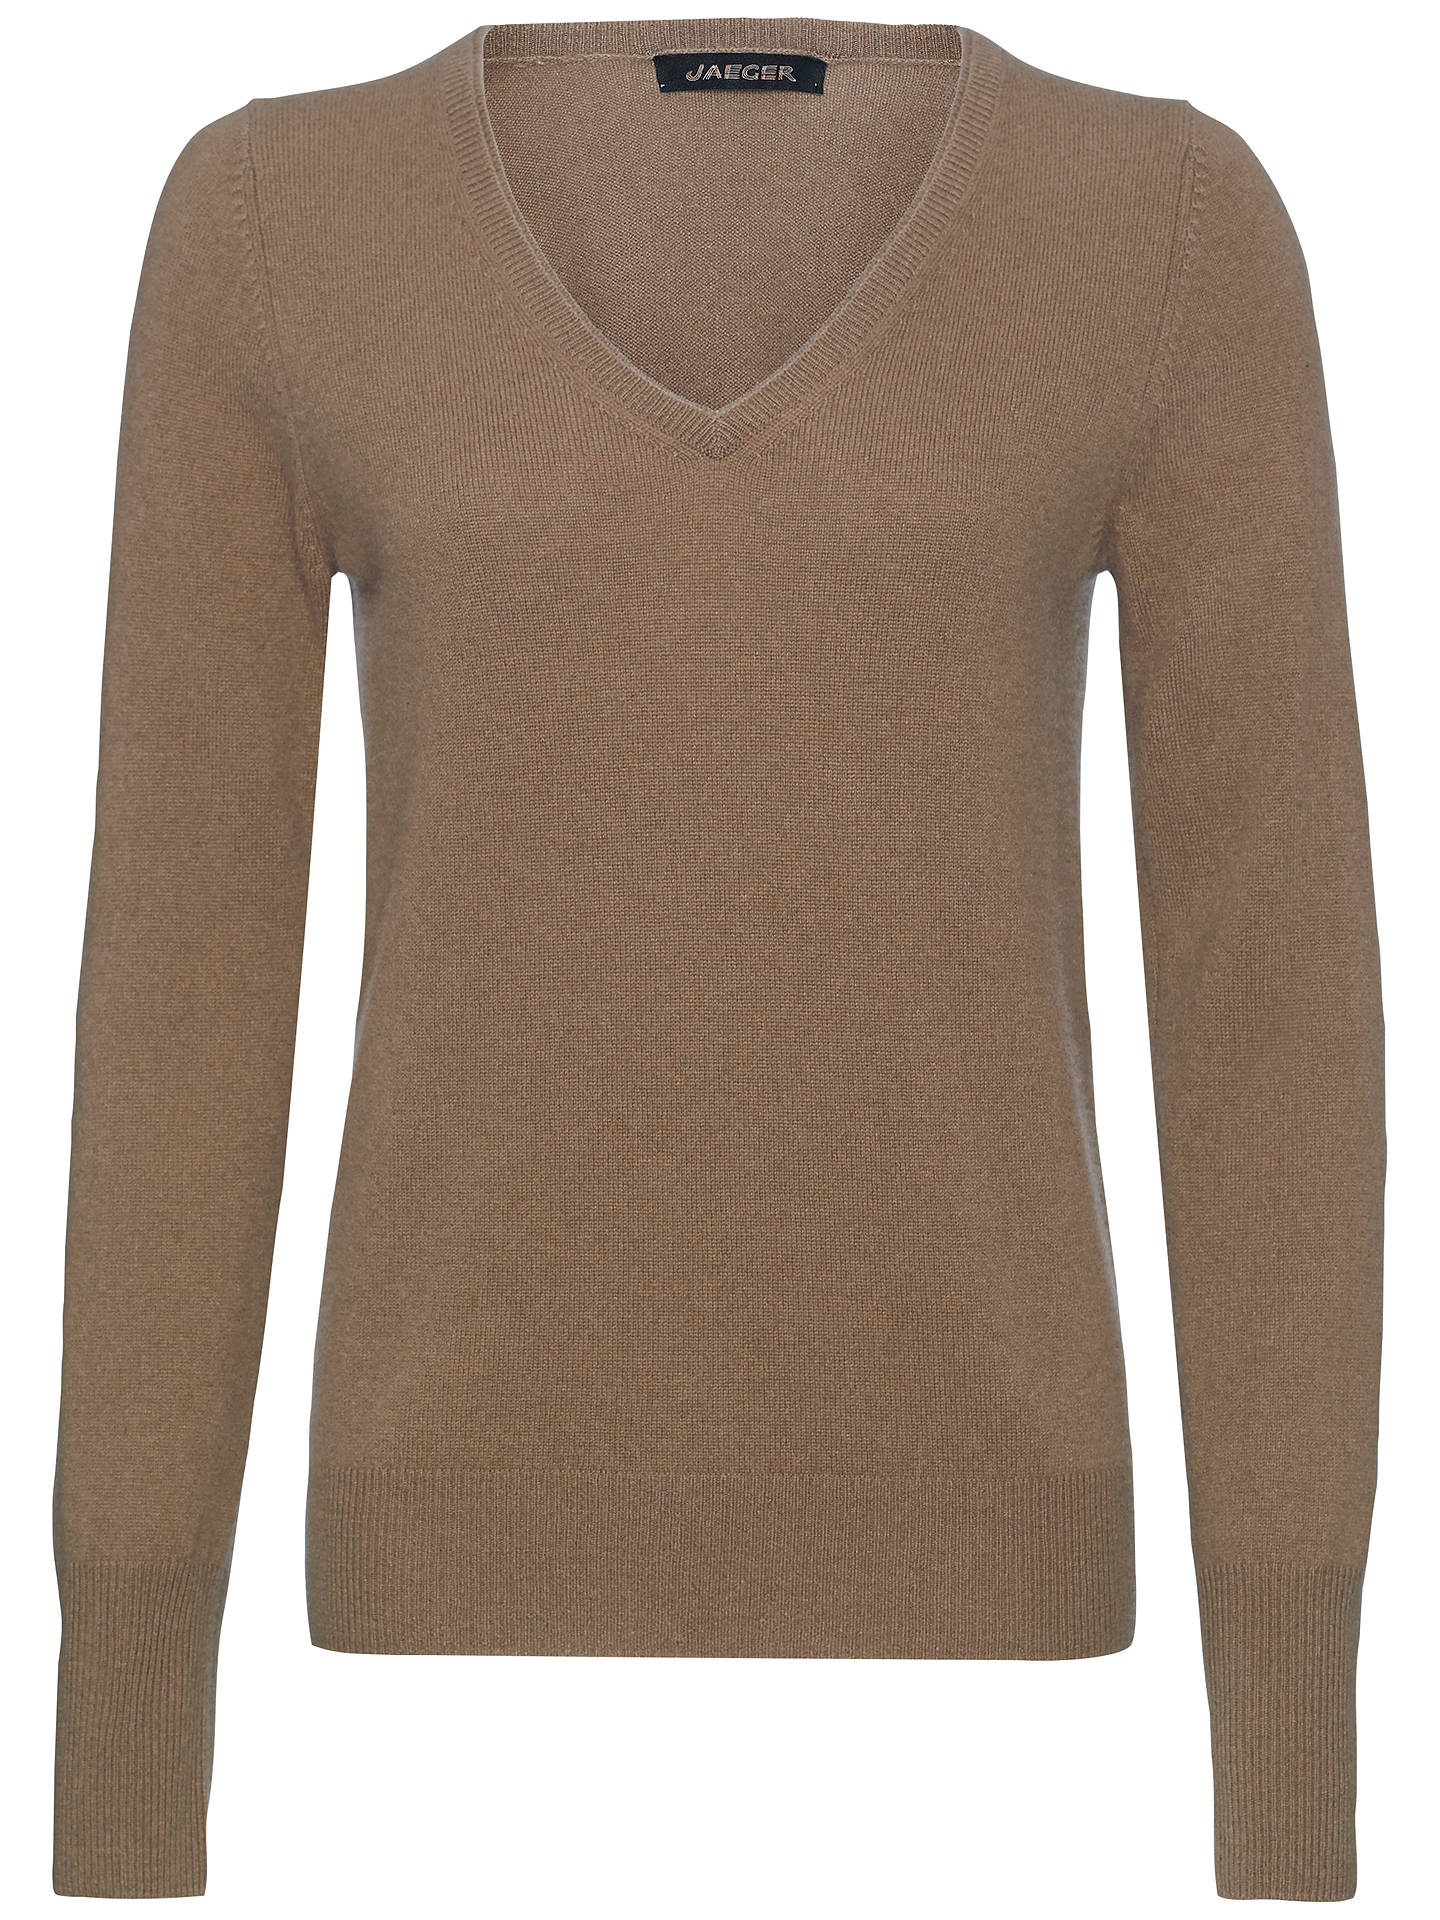 Jaeger Cashmere V Neck Sweater Mole At John Lewis Partners